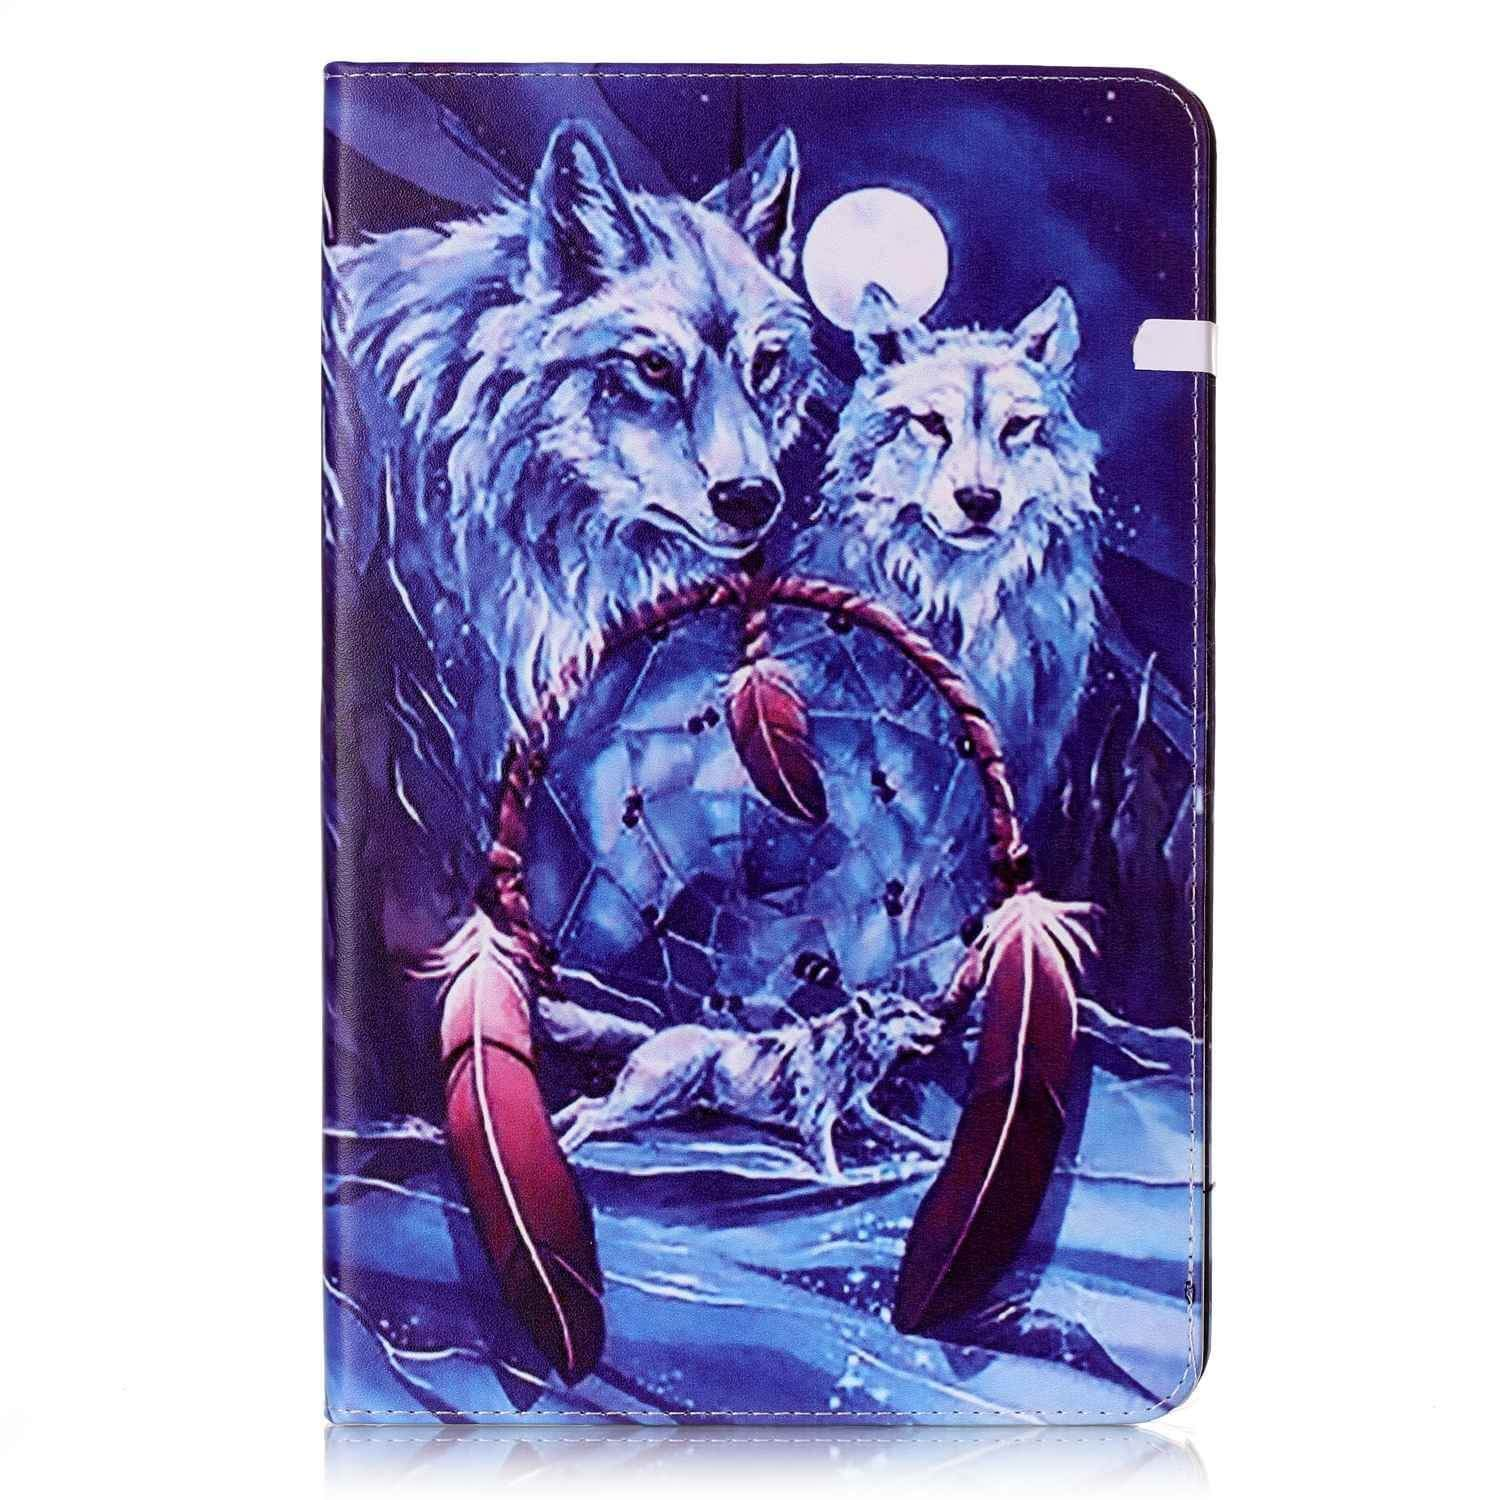 galaxy tab a 10 1 s pen 2016 case with a wide selection of images and 2 stand 10: